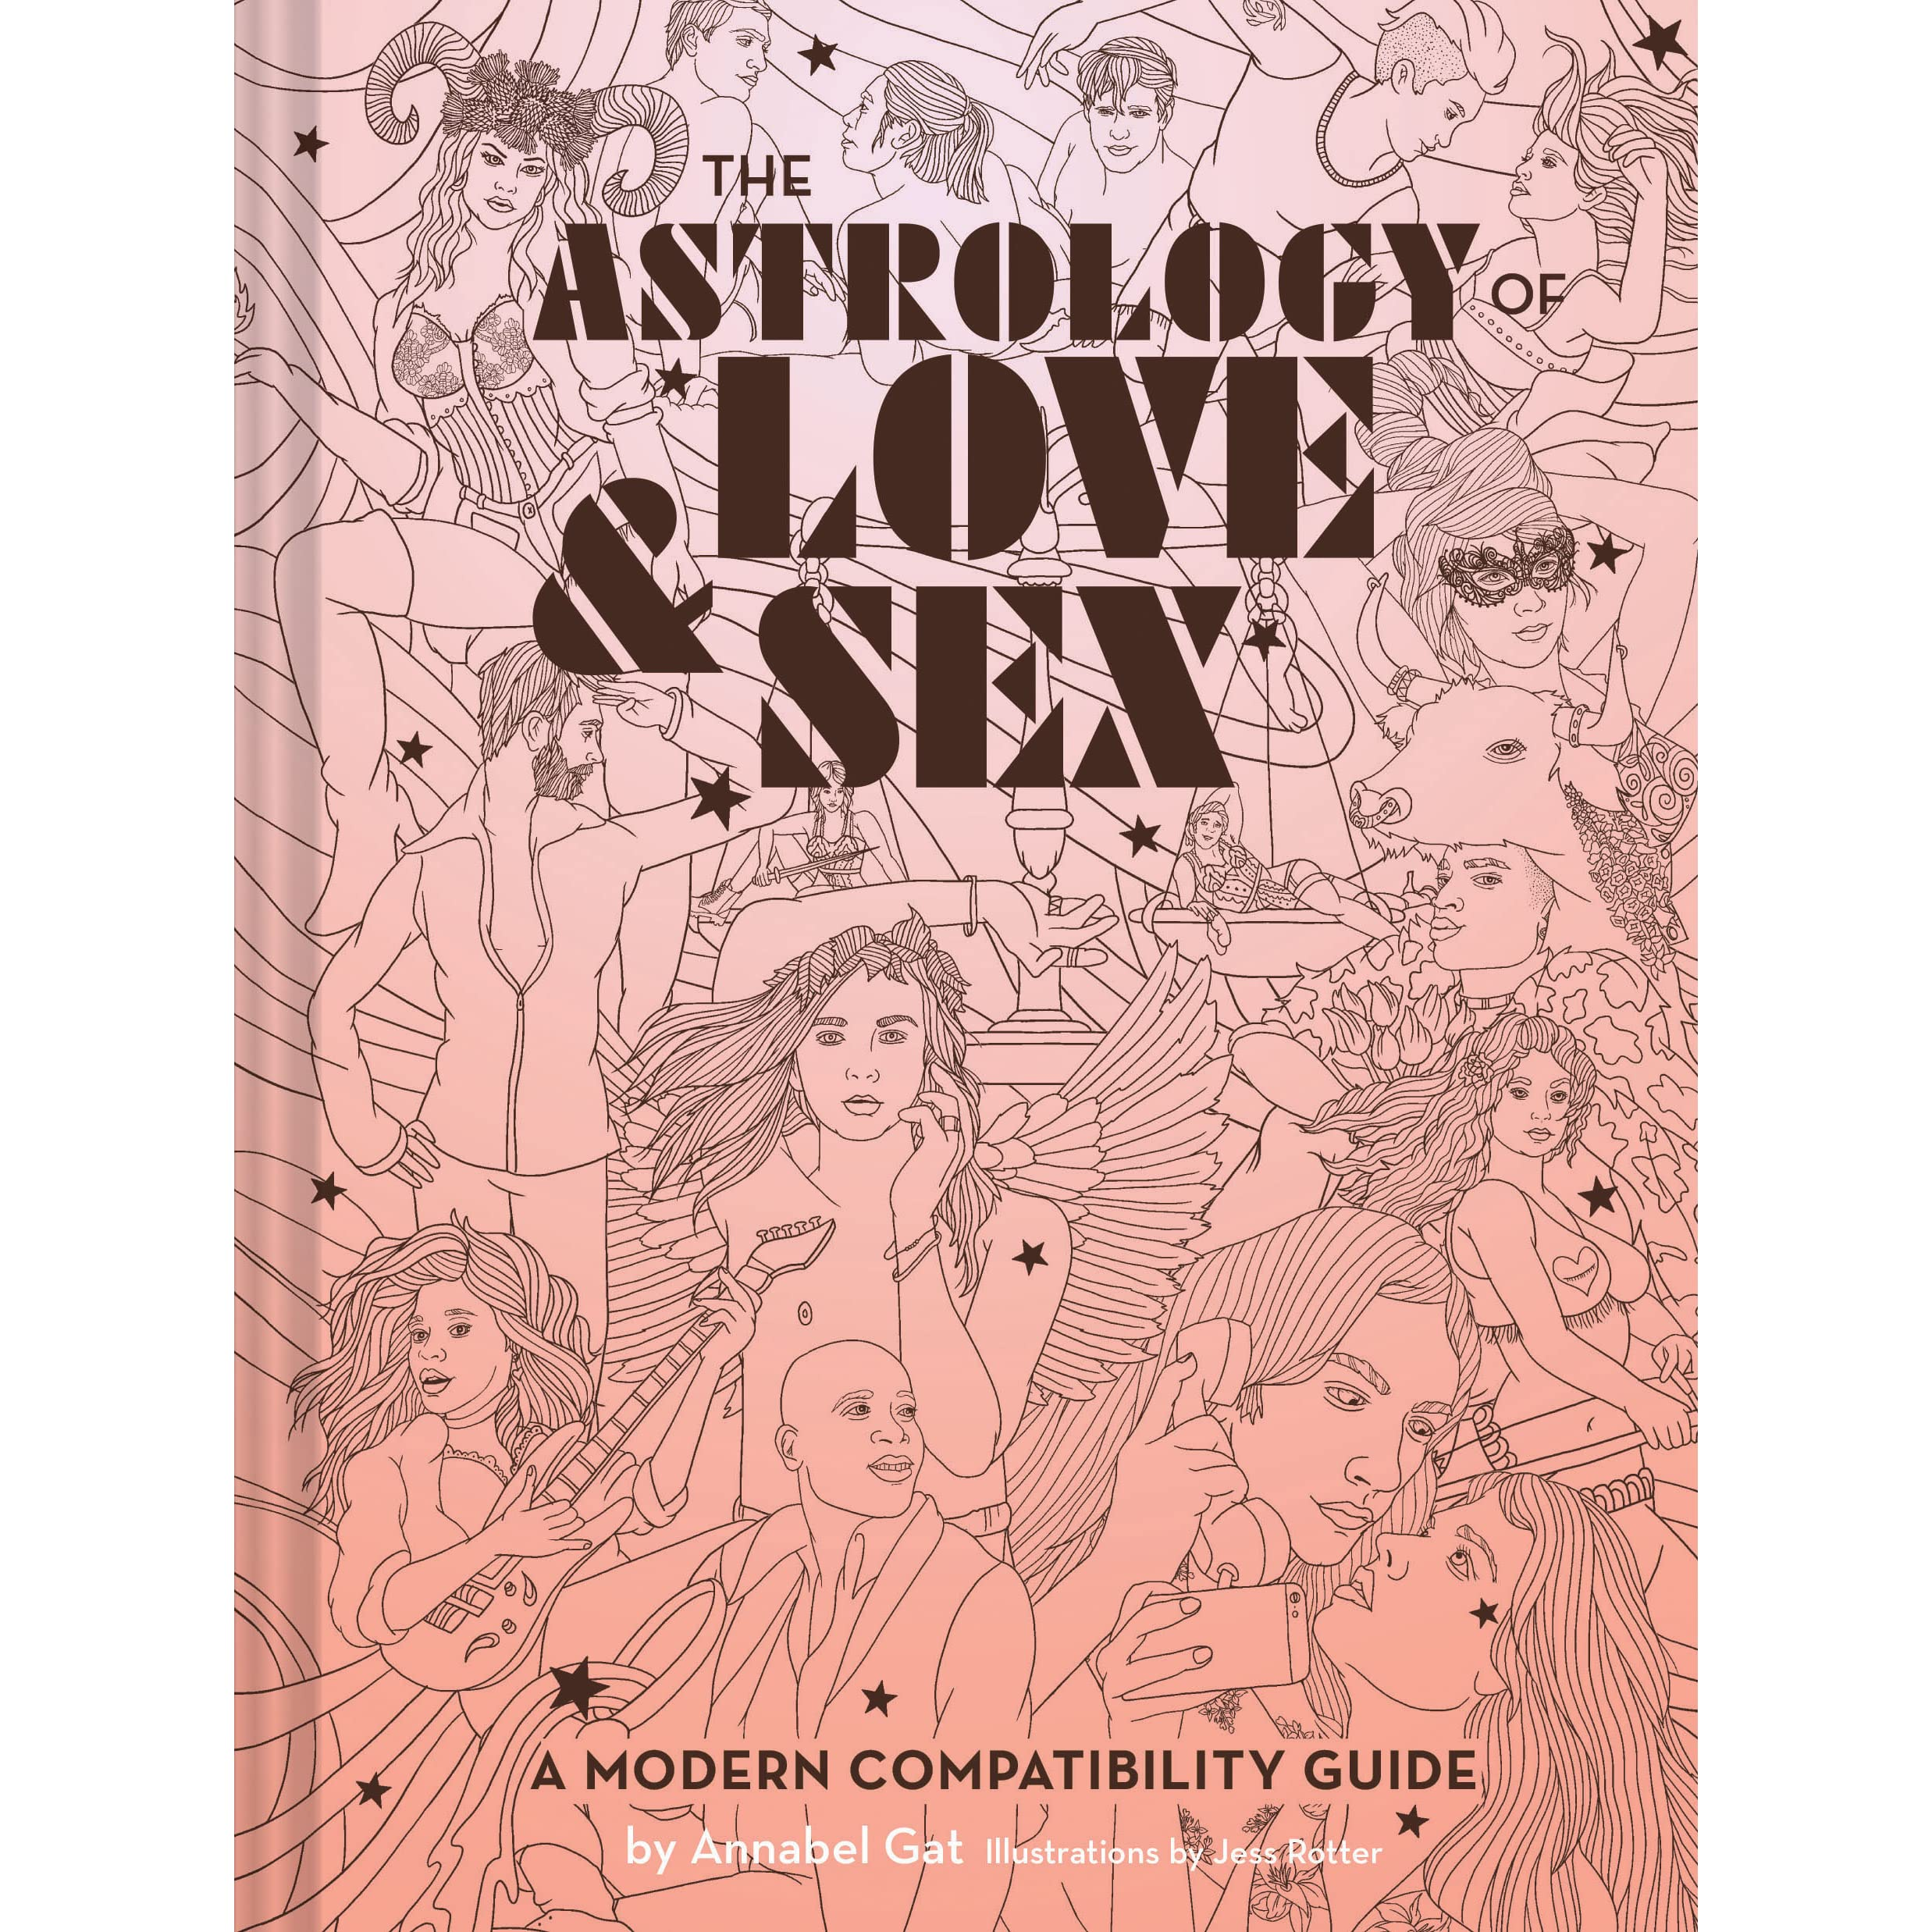 Very love sex and astrology